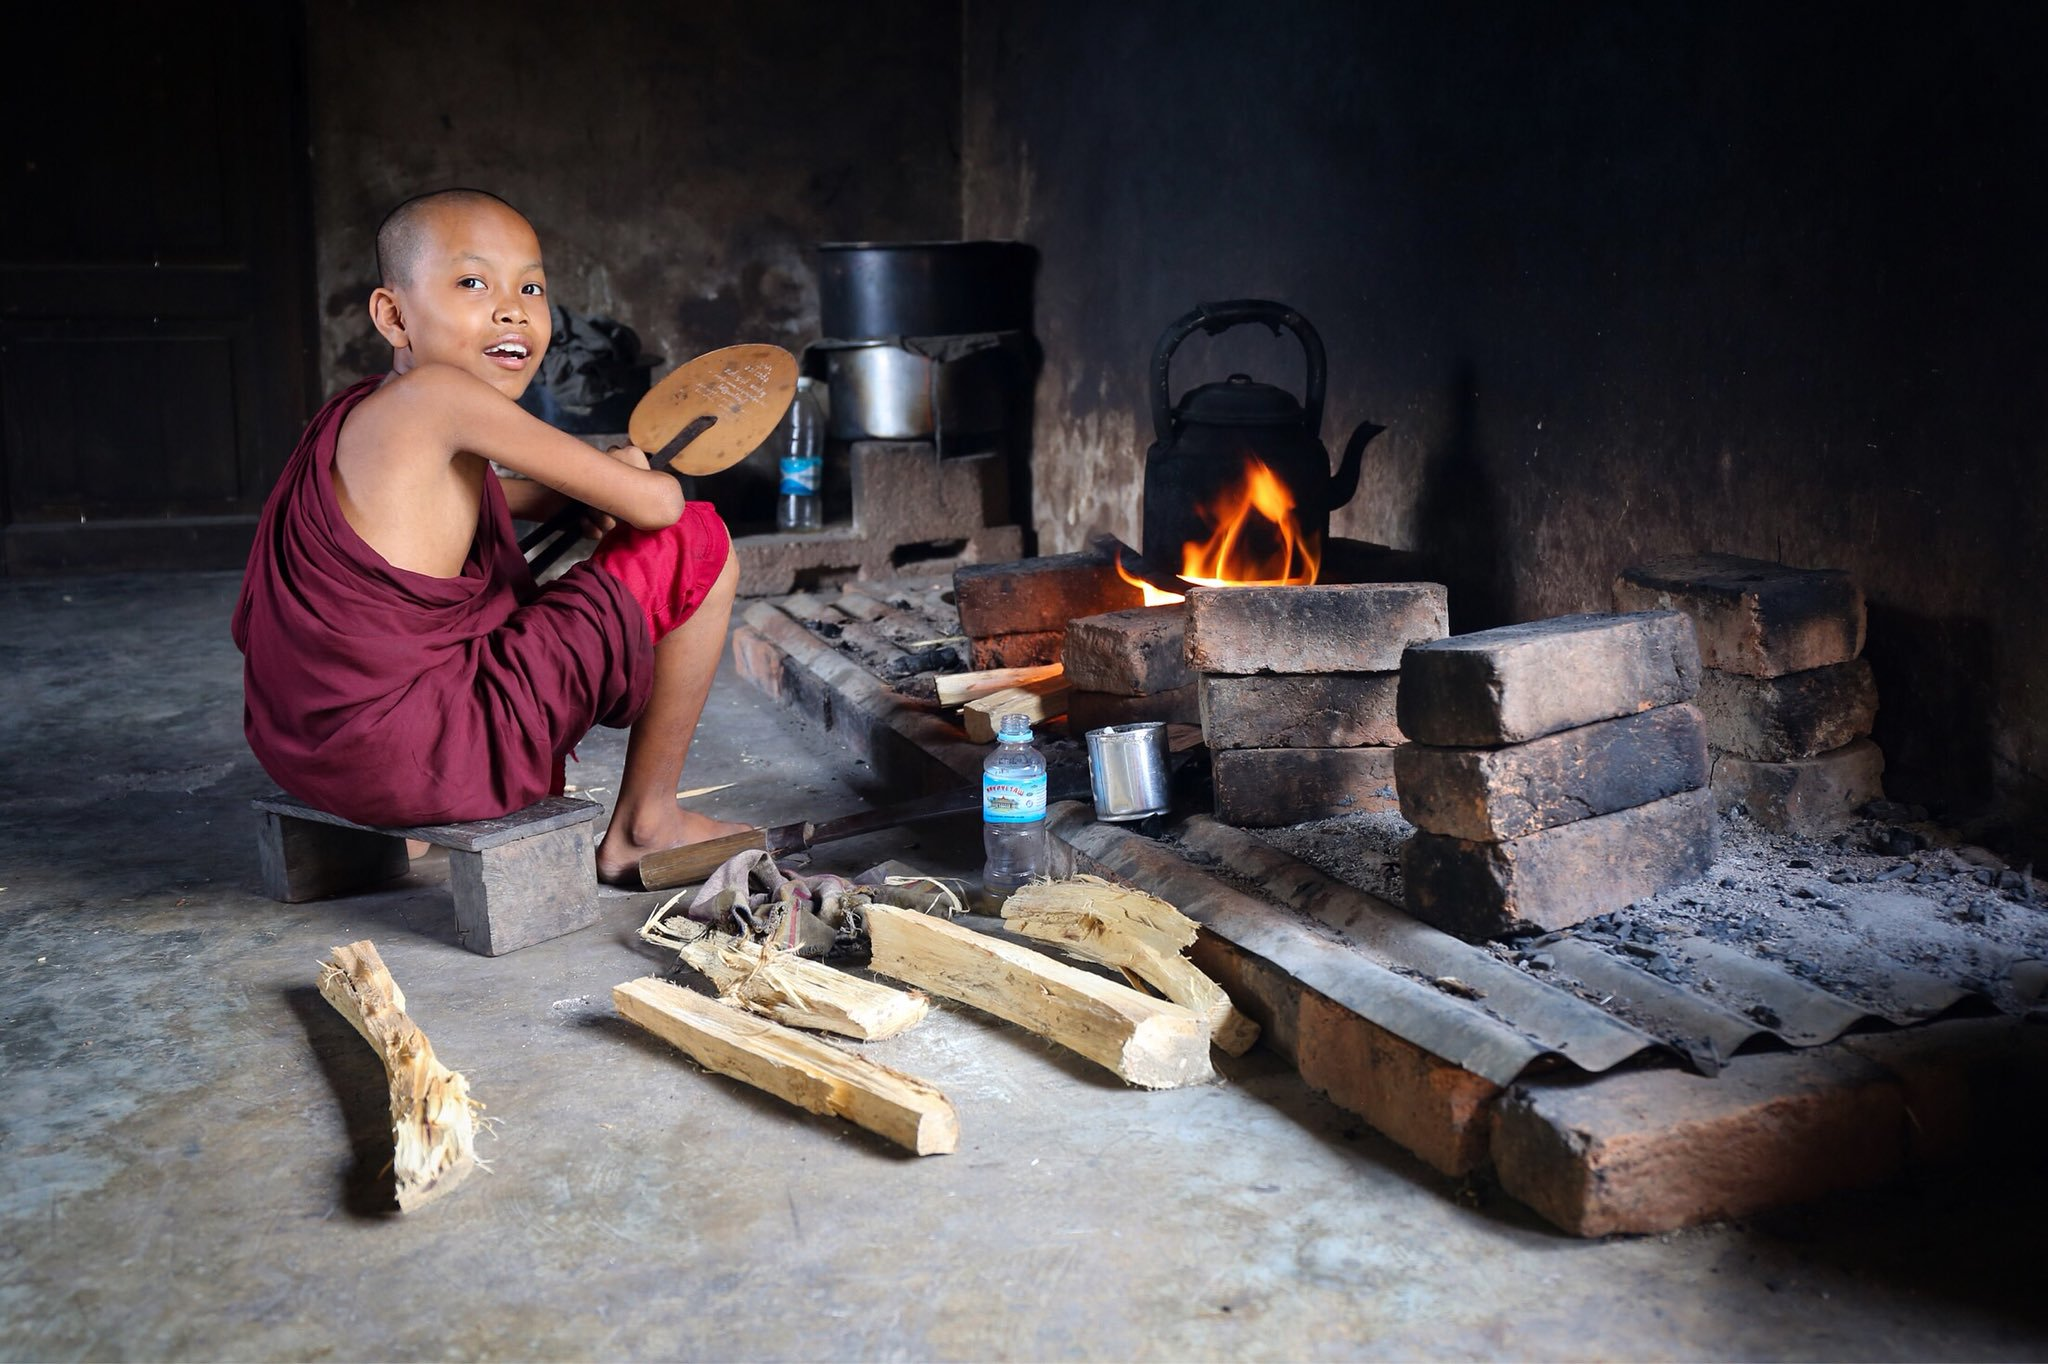 This buddy made me an amazing lunch. The elder monk at the monastery told us he became a monk after a harrowing near-death experience during the cyclone. Irrawaddy Division, Myanmar.